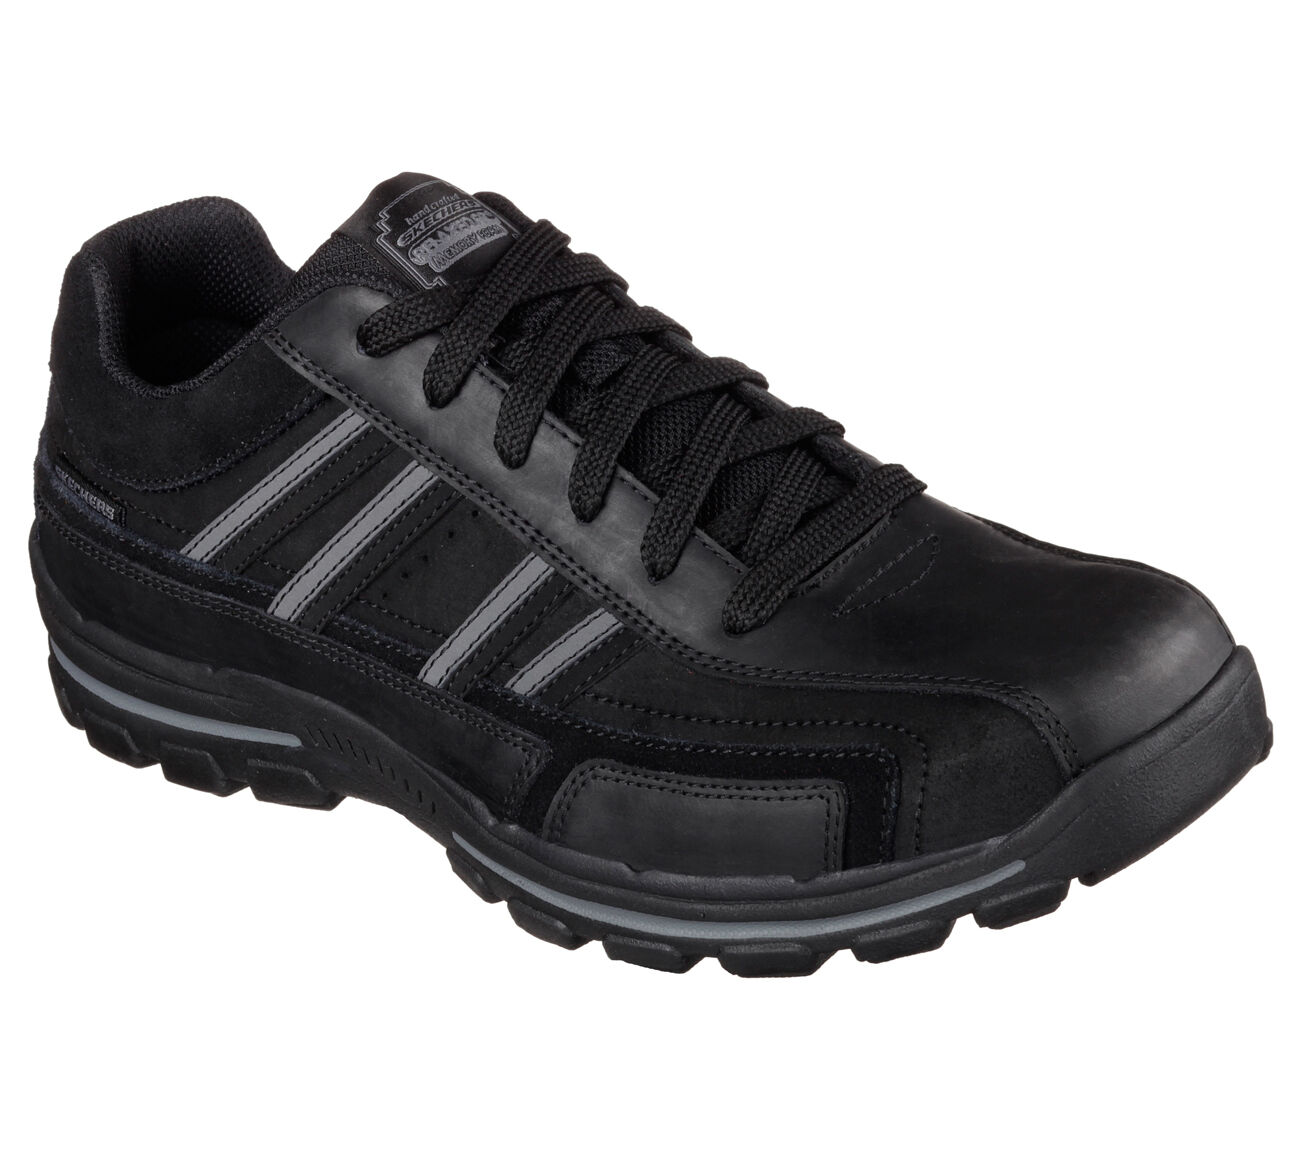 Men's SKECHERS RELAXED FIT  Braver- Gonsor Casual shoes, 64624 BLK Multipl Sizes